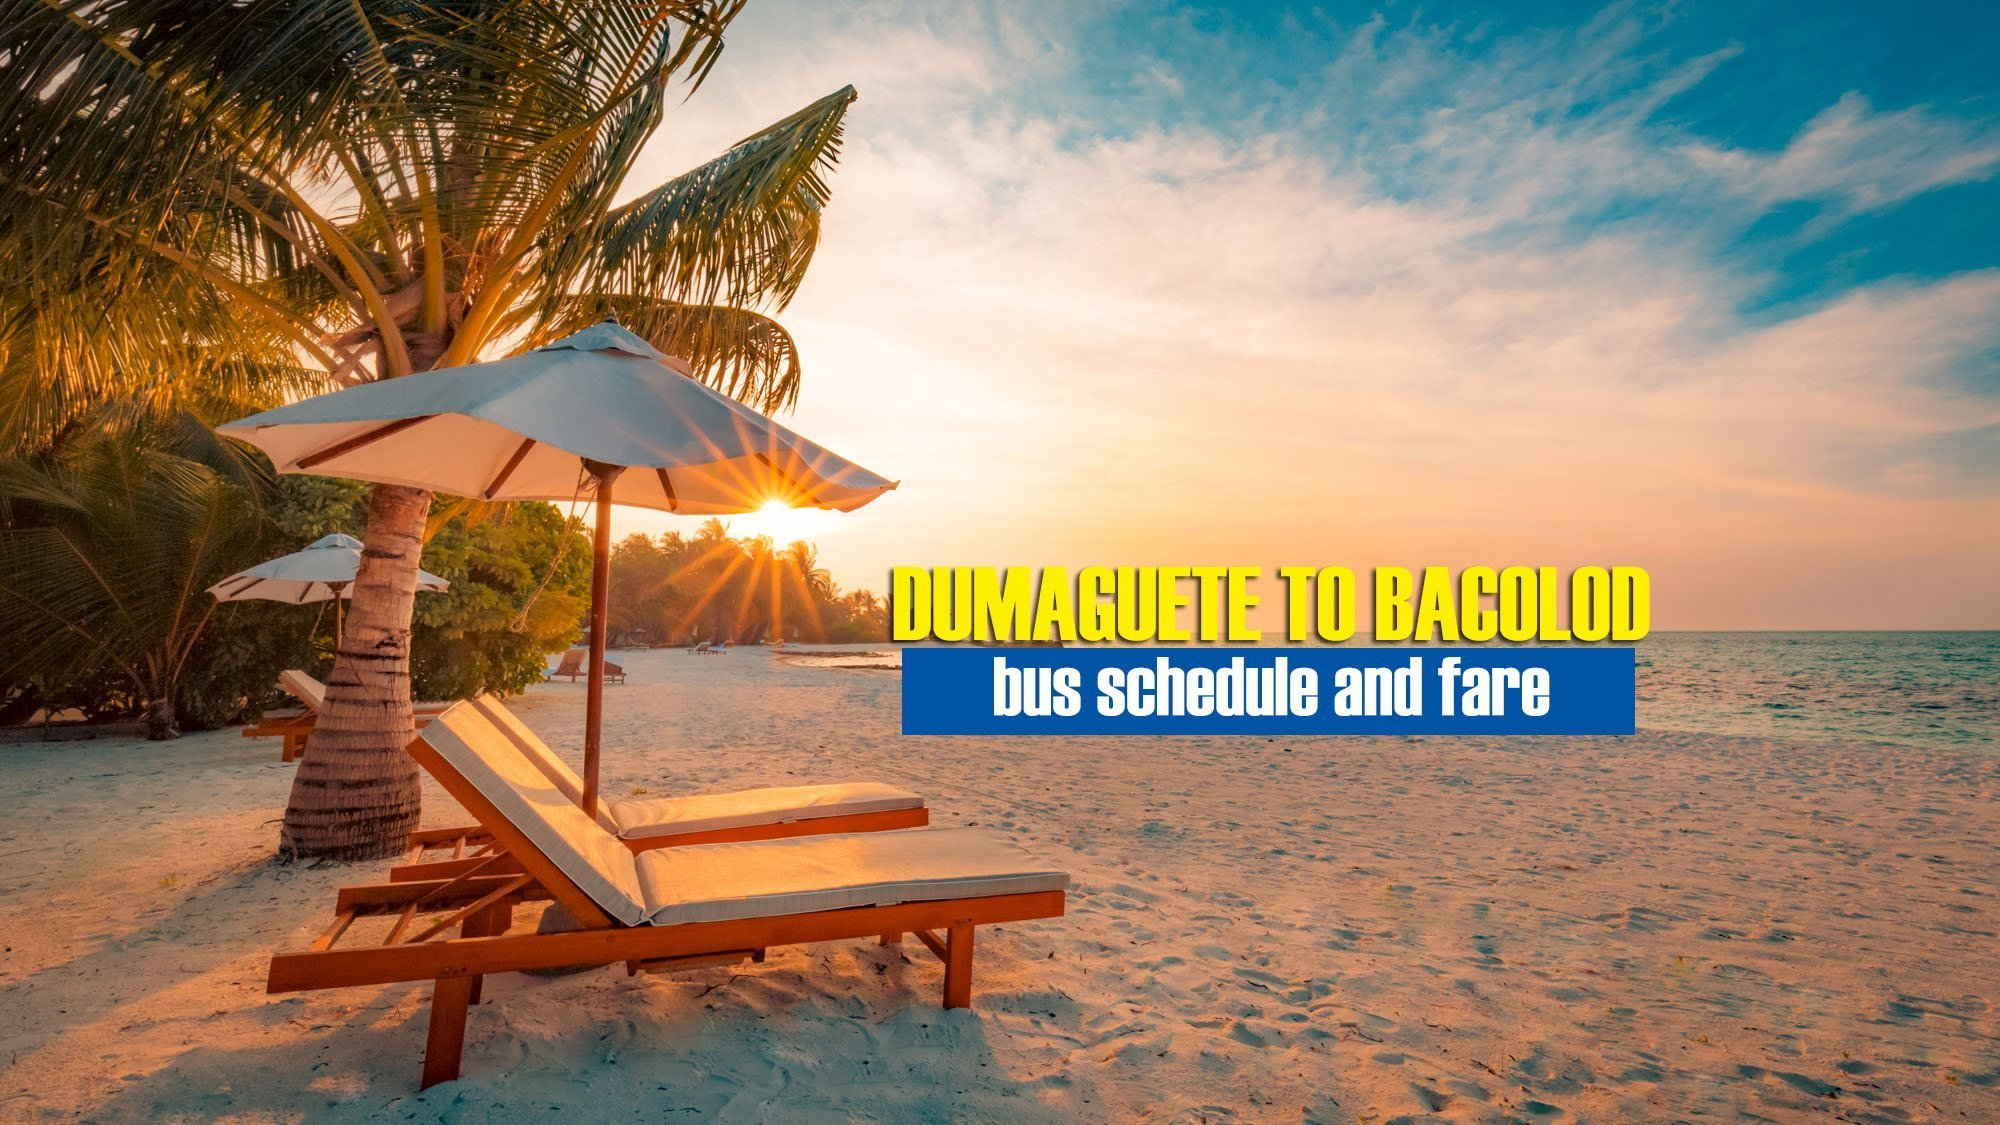 Dumaguete to Bacolod: 2020 Bus Schedule & Fare